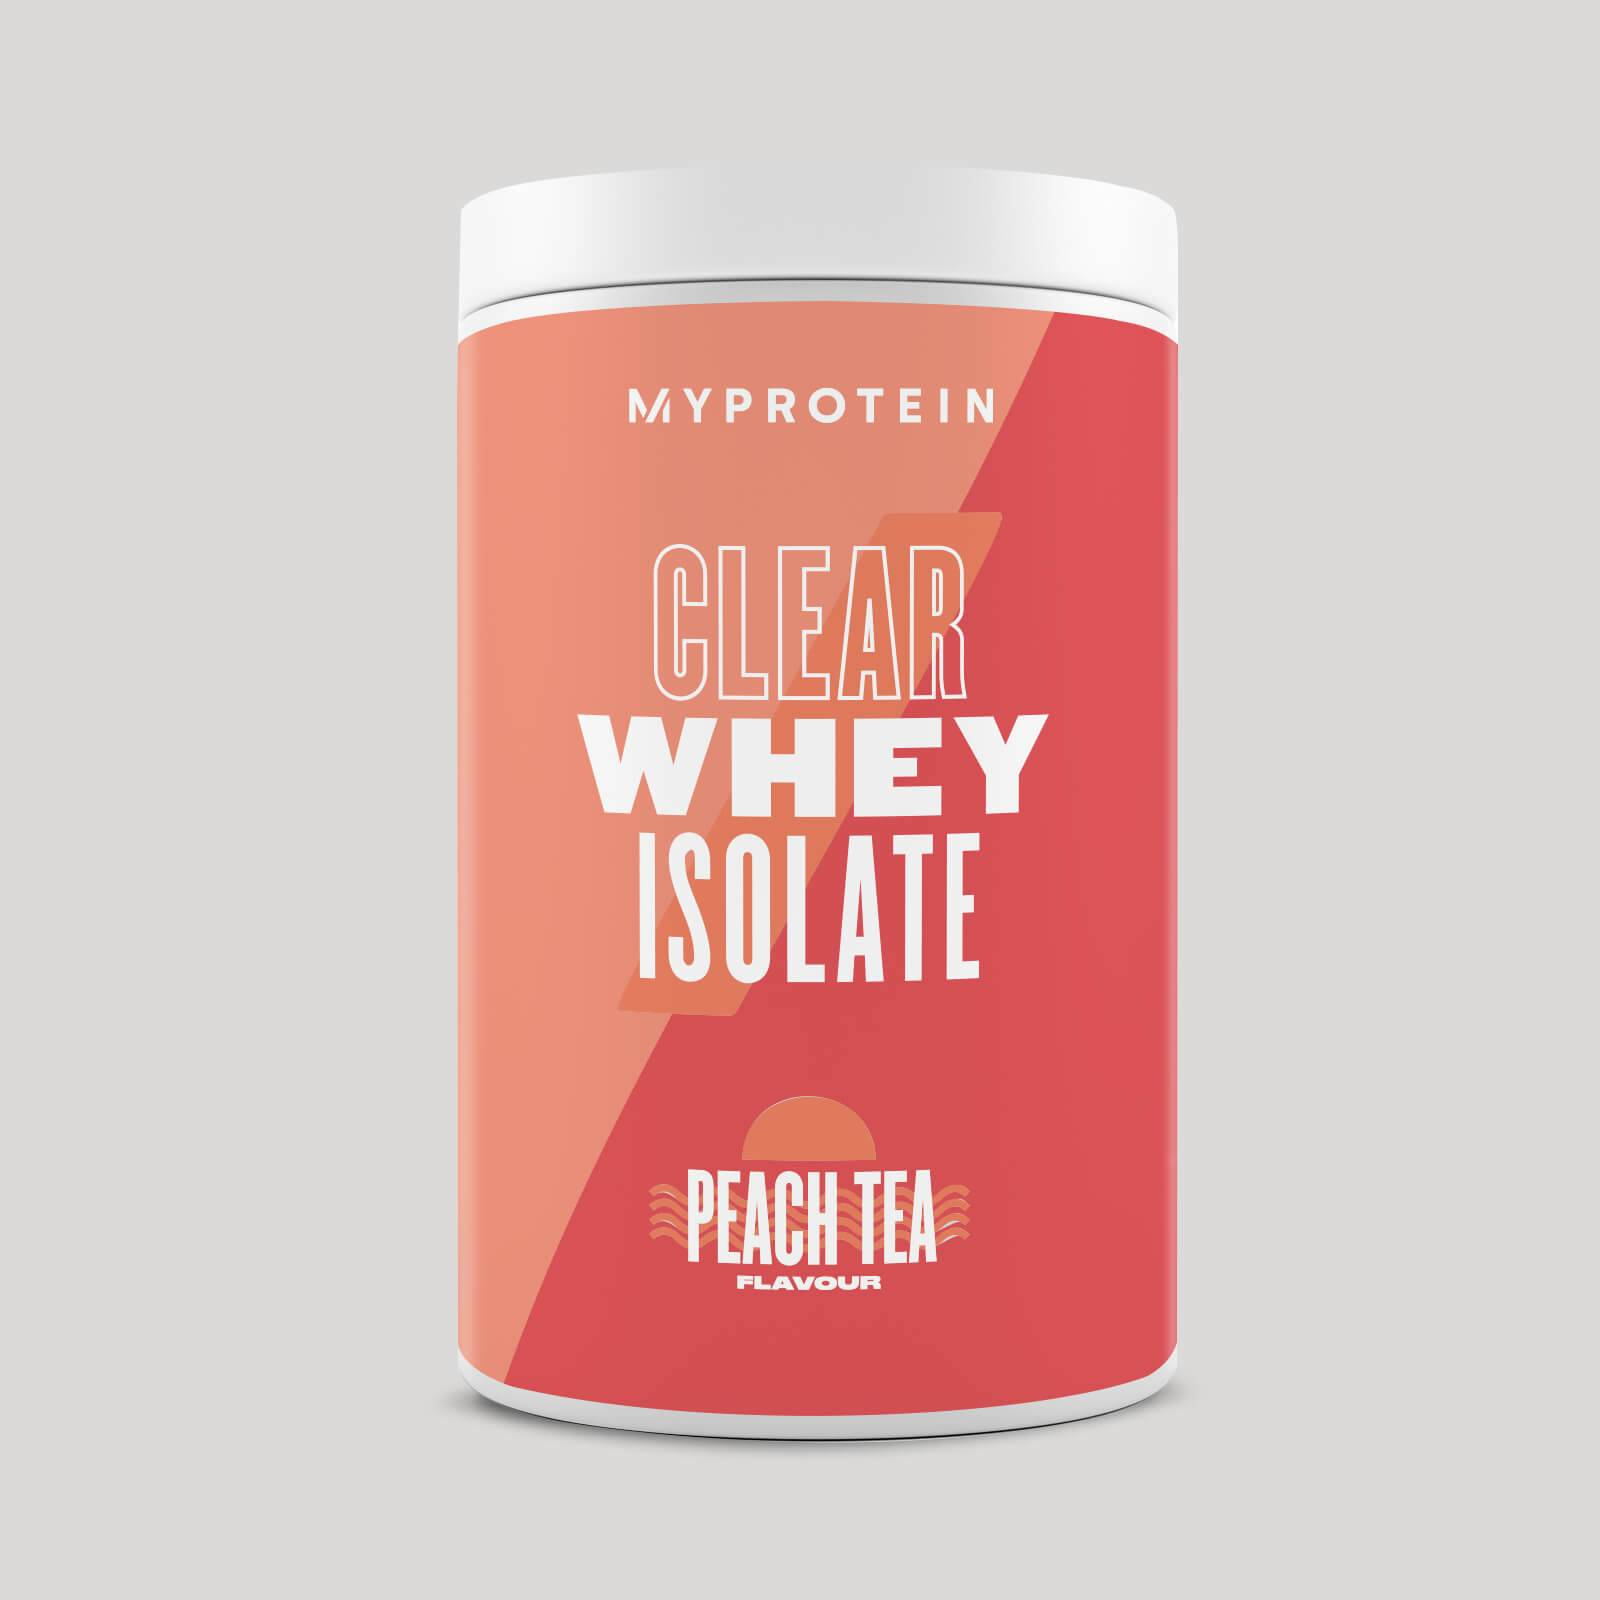 Myprotein Clear Whey Isolate - 20servings - Peach Tea